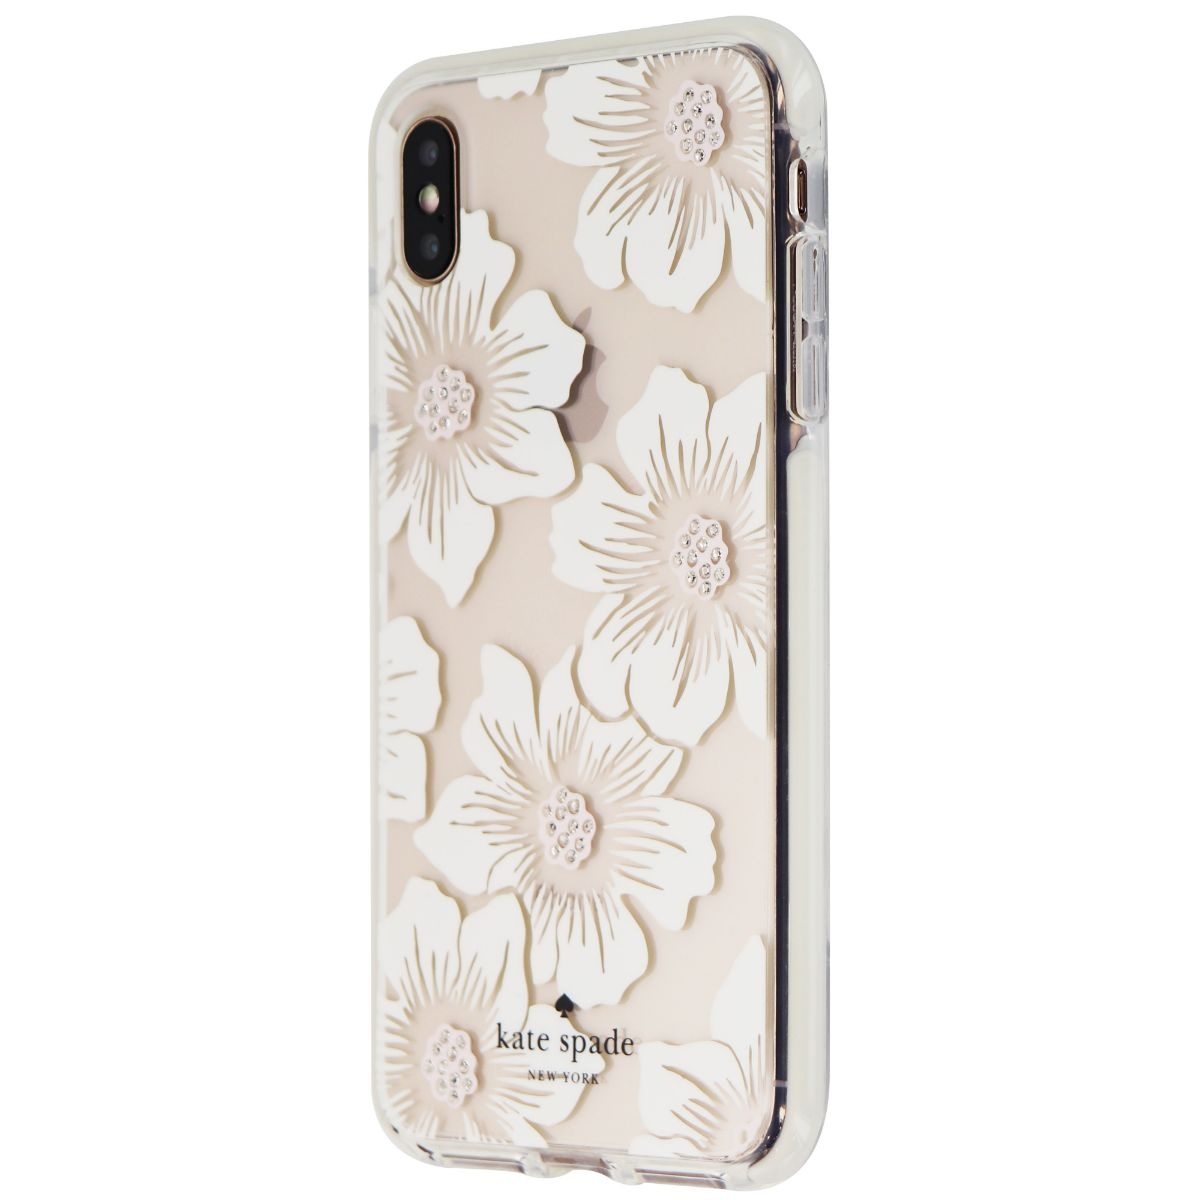 Kate Spade Defensive Hardshell Case for iPhone XS Max - Hollyhock/Cream/Gems